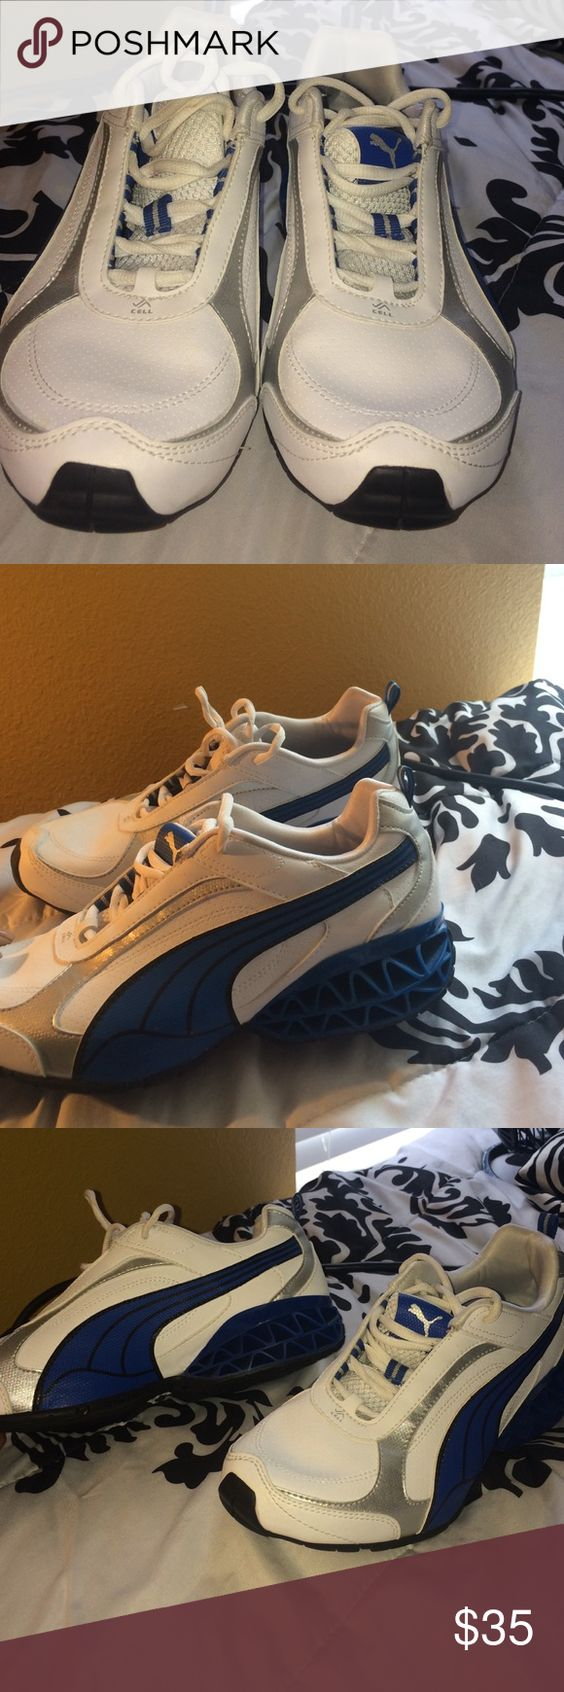 Pumas Clean puma sneakers mint condition Puma Shoes Sneakers